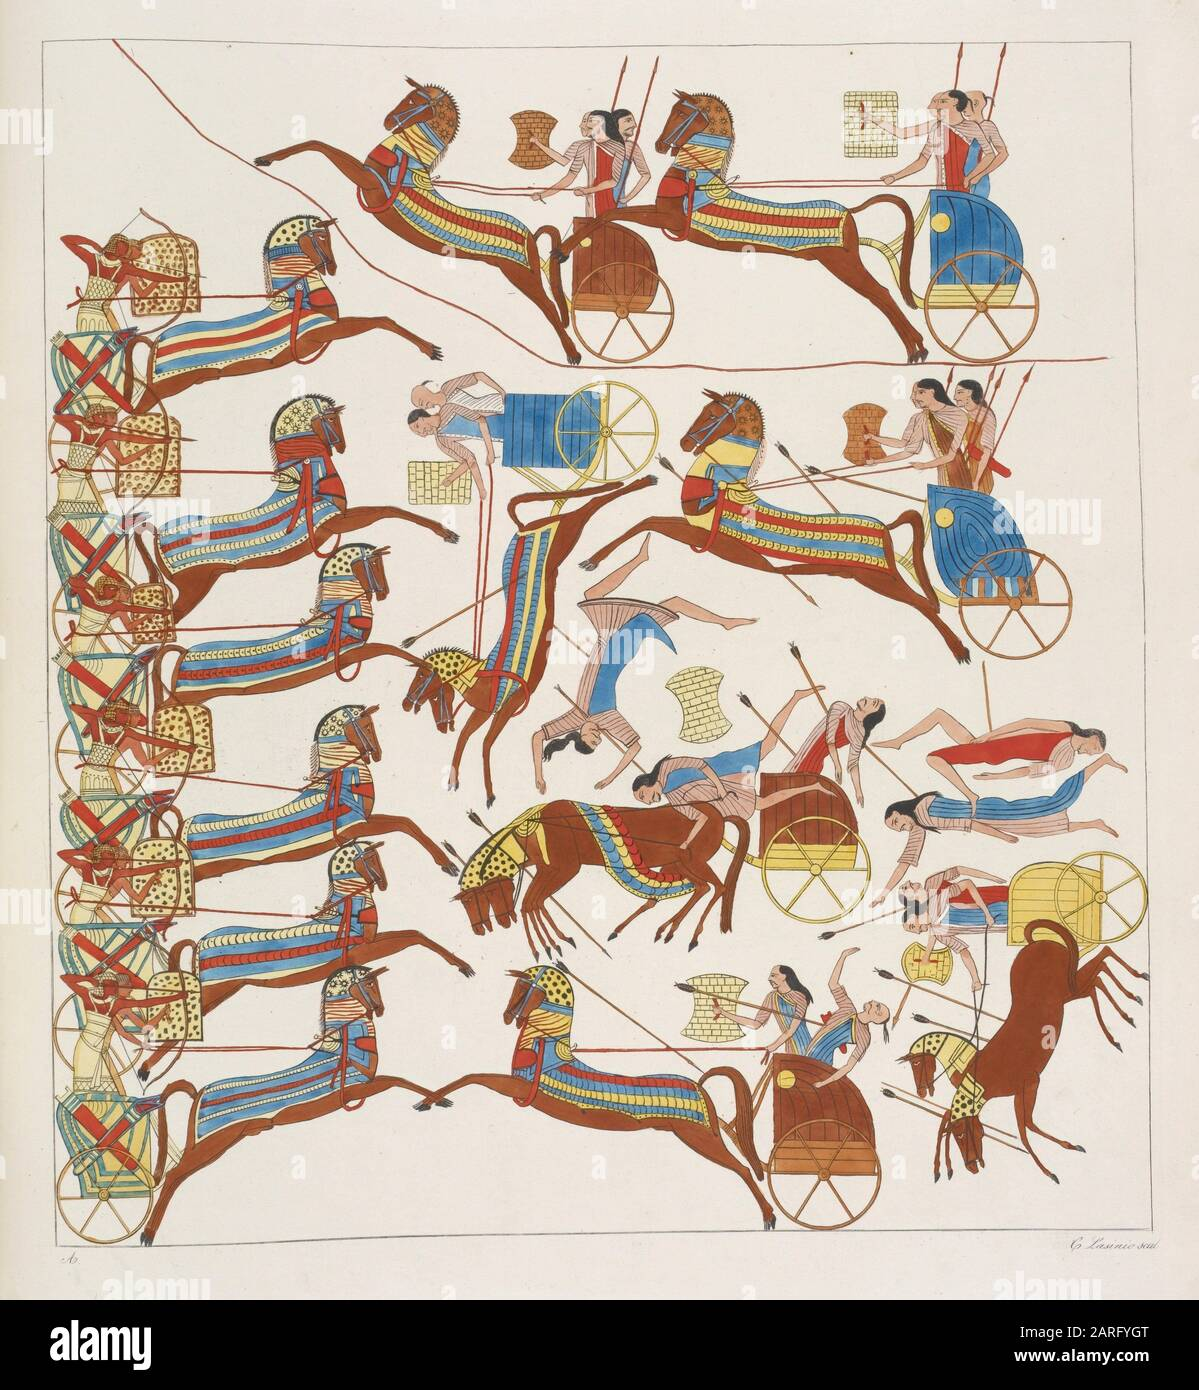 Battle of chariots. Follow up and end of the great figurative subject in the northern wall of the Speco d'Ibsambul [Abû Sunbul], of which we have the Stock Photo